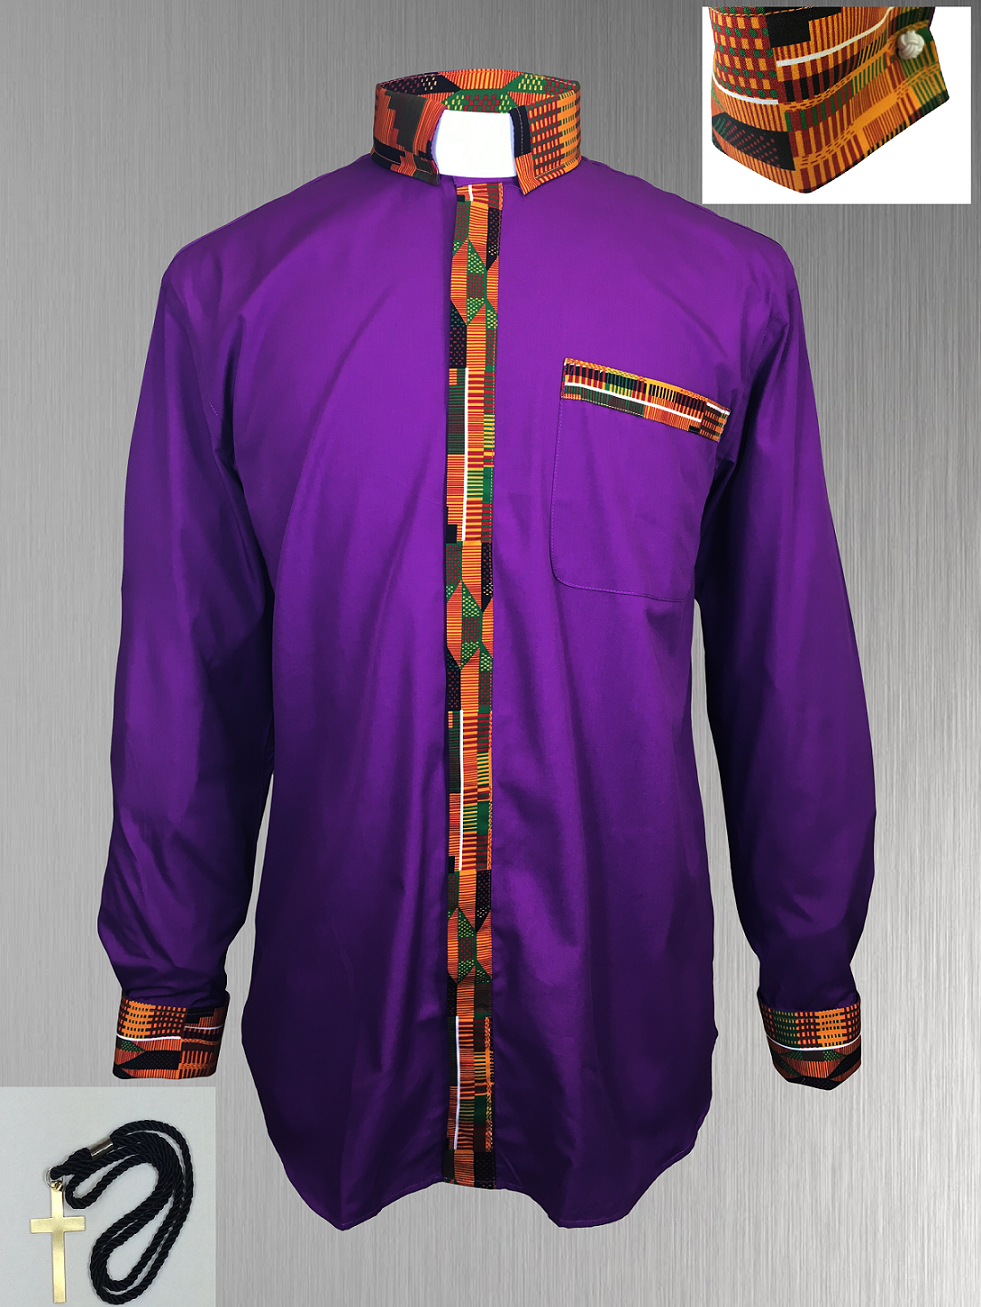 Purple Clergy Shirt with African Kente Cloth Fabric